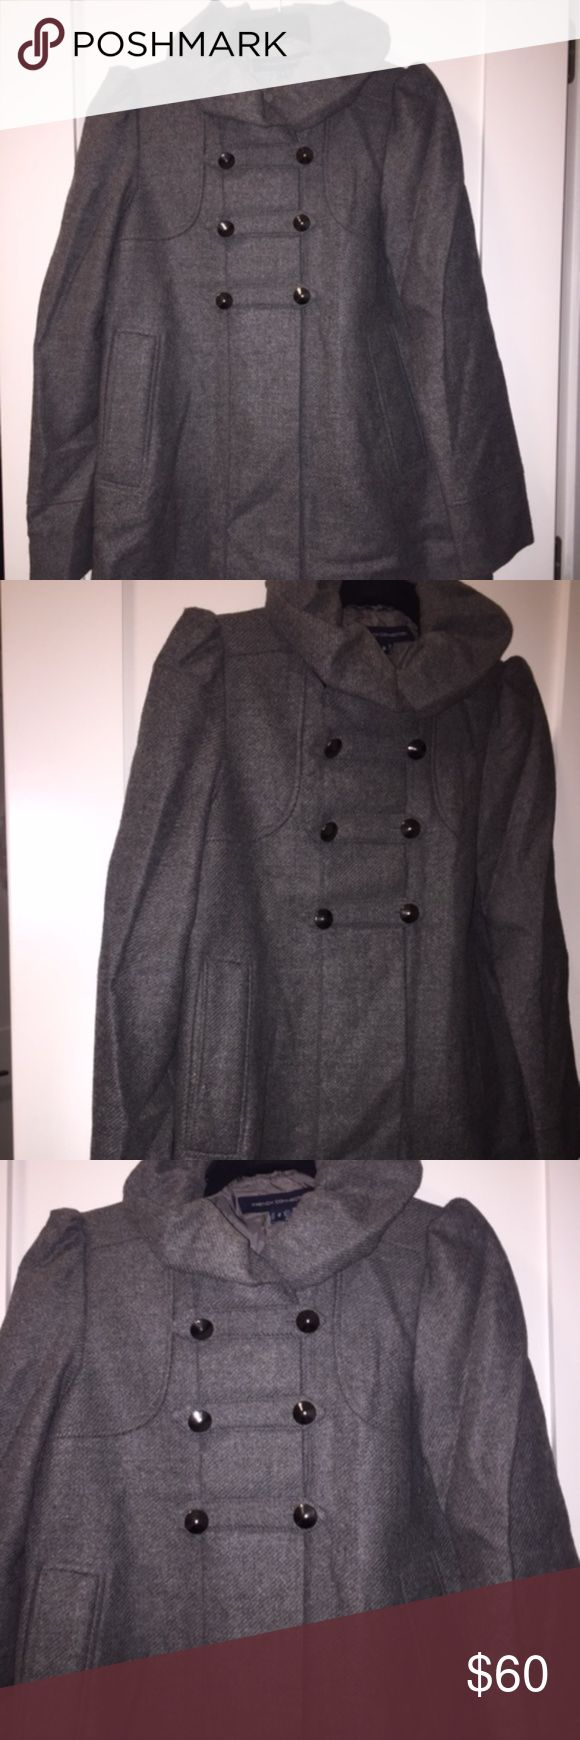 French Connection - Double Breasted Peacoat Gray double breasted peacoat with silver buttons and ruffle collar.  The lining is torn inside the jacket and one of the pockets, but exterior of coat is in perfect condition! French Connection Jackets & Coats Pea Coats